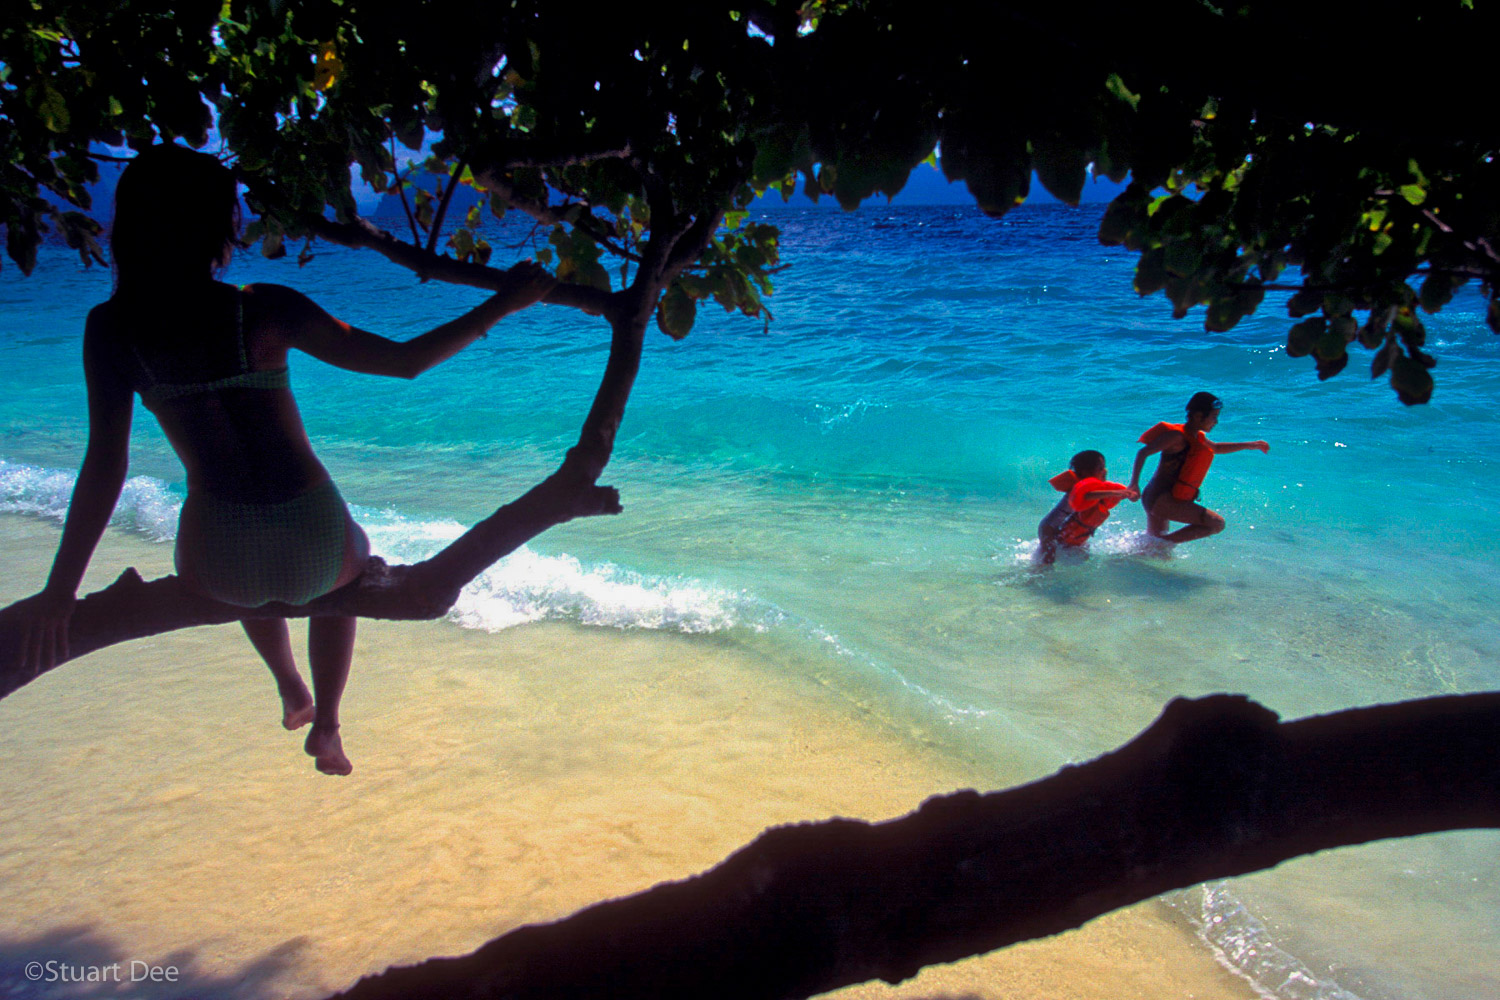 Woman watching two children playing on a beach, Entalula Island, El Nido, Palawan, Philippines